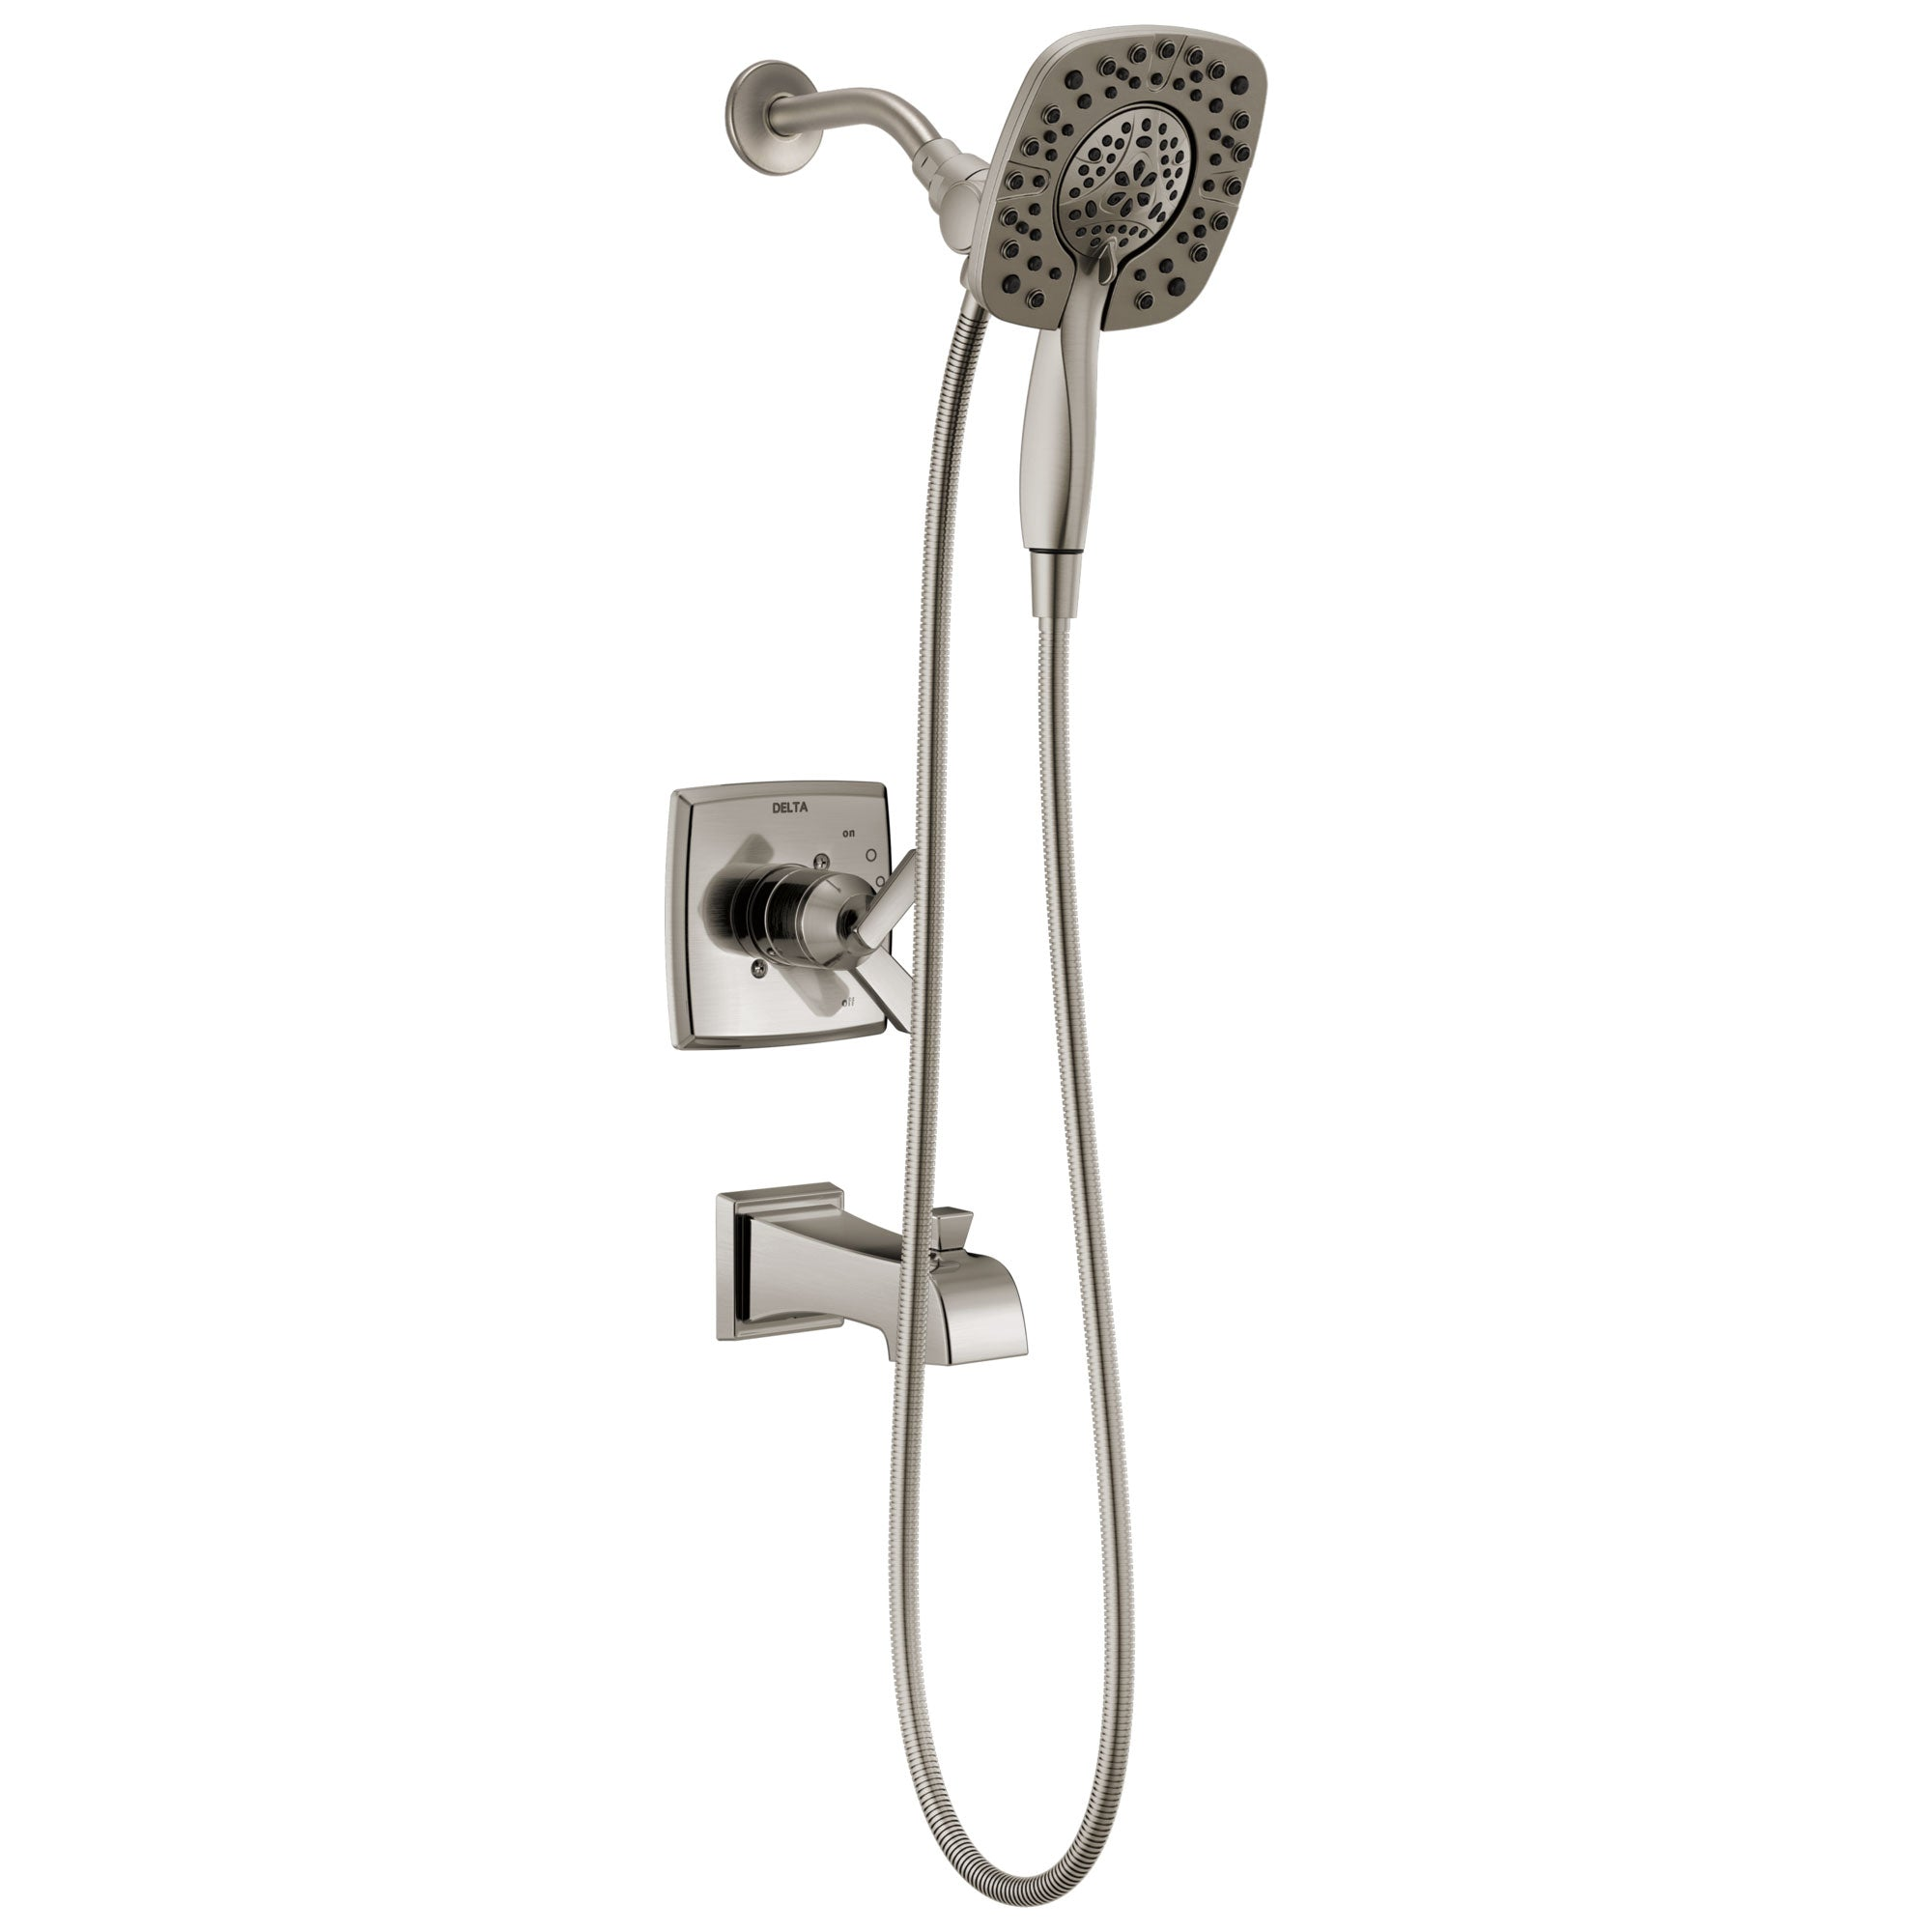 Delta Ashlyn Stainless Steel Finish Monitor 17 Series Tub and Shower Combo Faucet with In2ition Two-in-One Hand Shower Spray INCLUDES Rough-in Valve D1114V